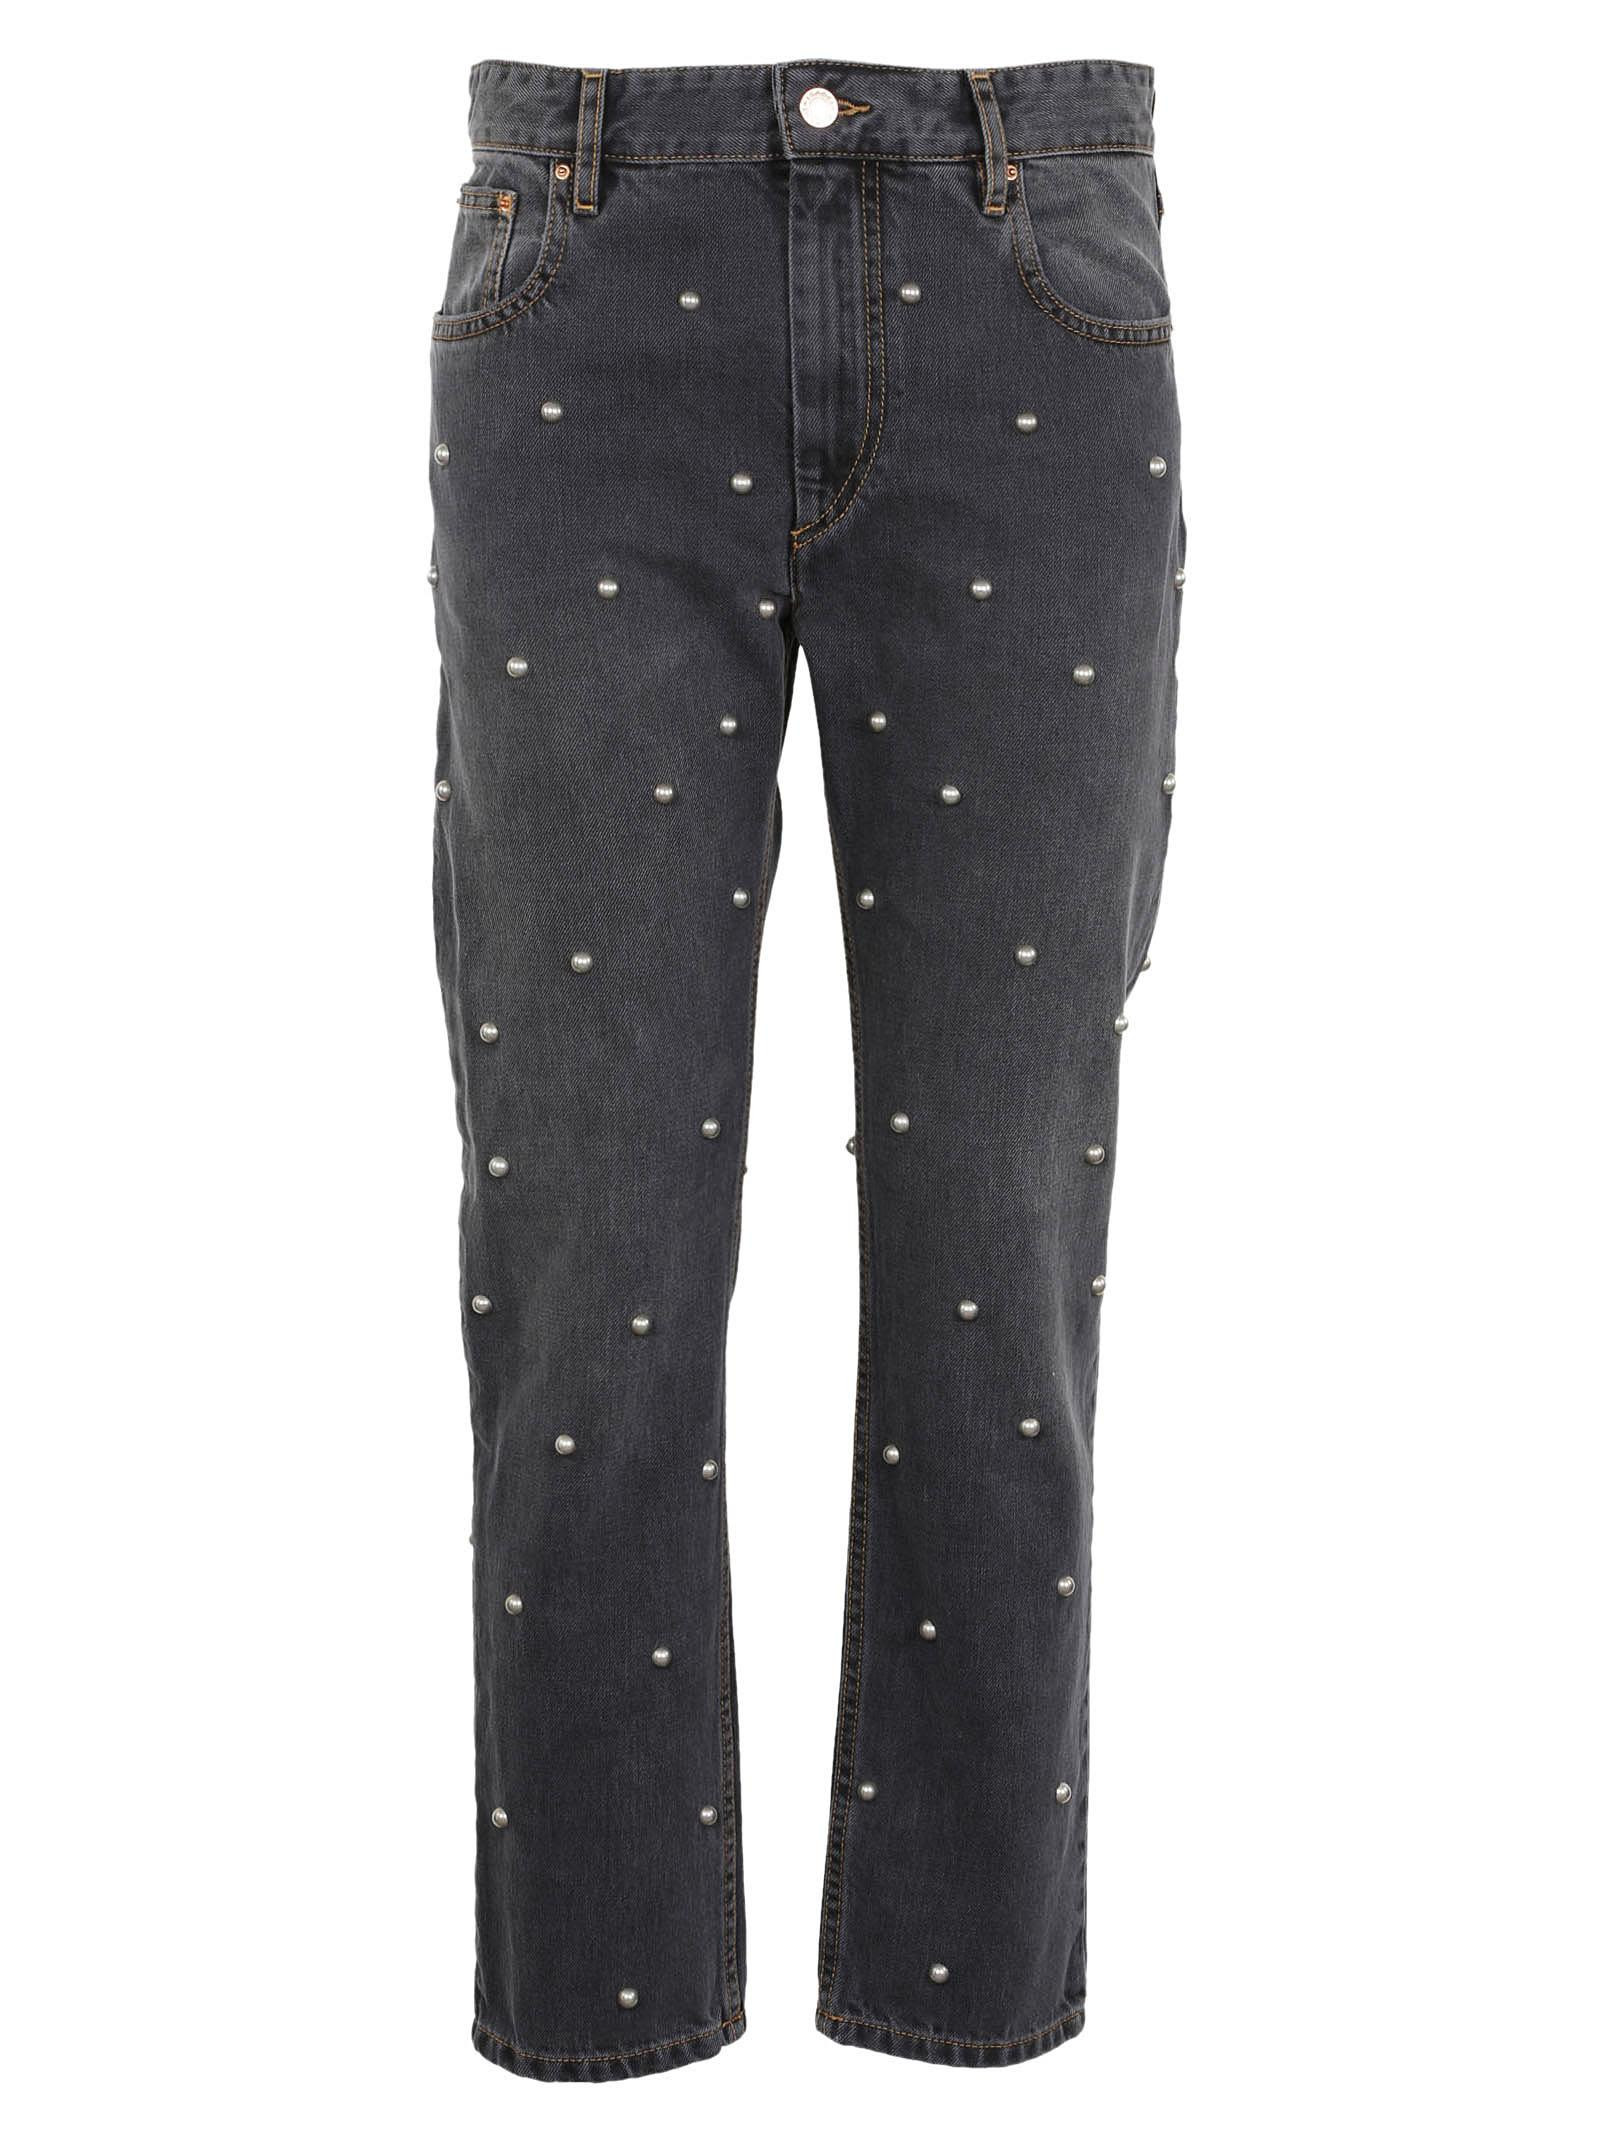 Isabel Marant Pearl Detailed Jeans